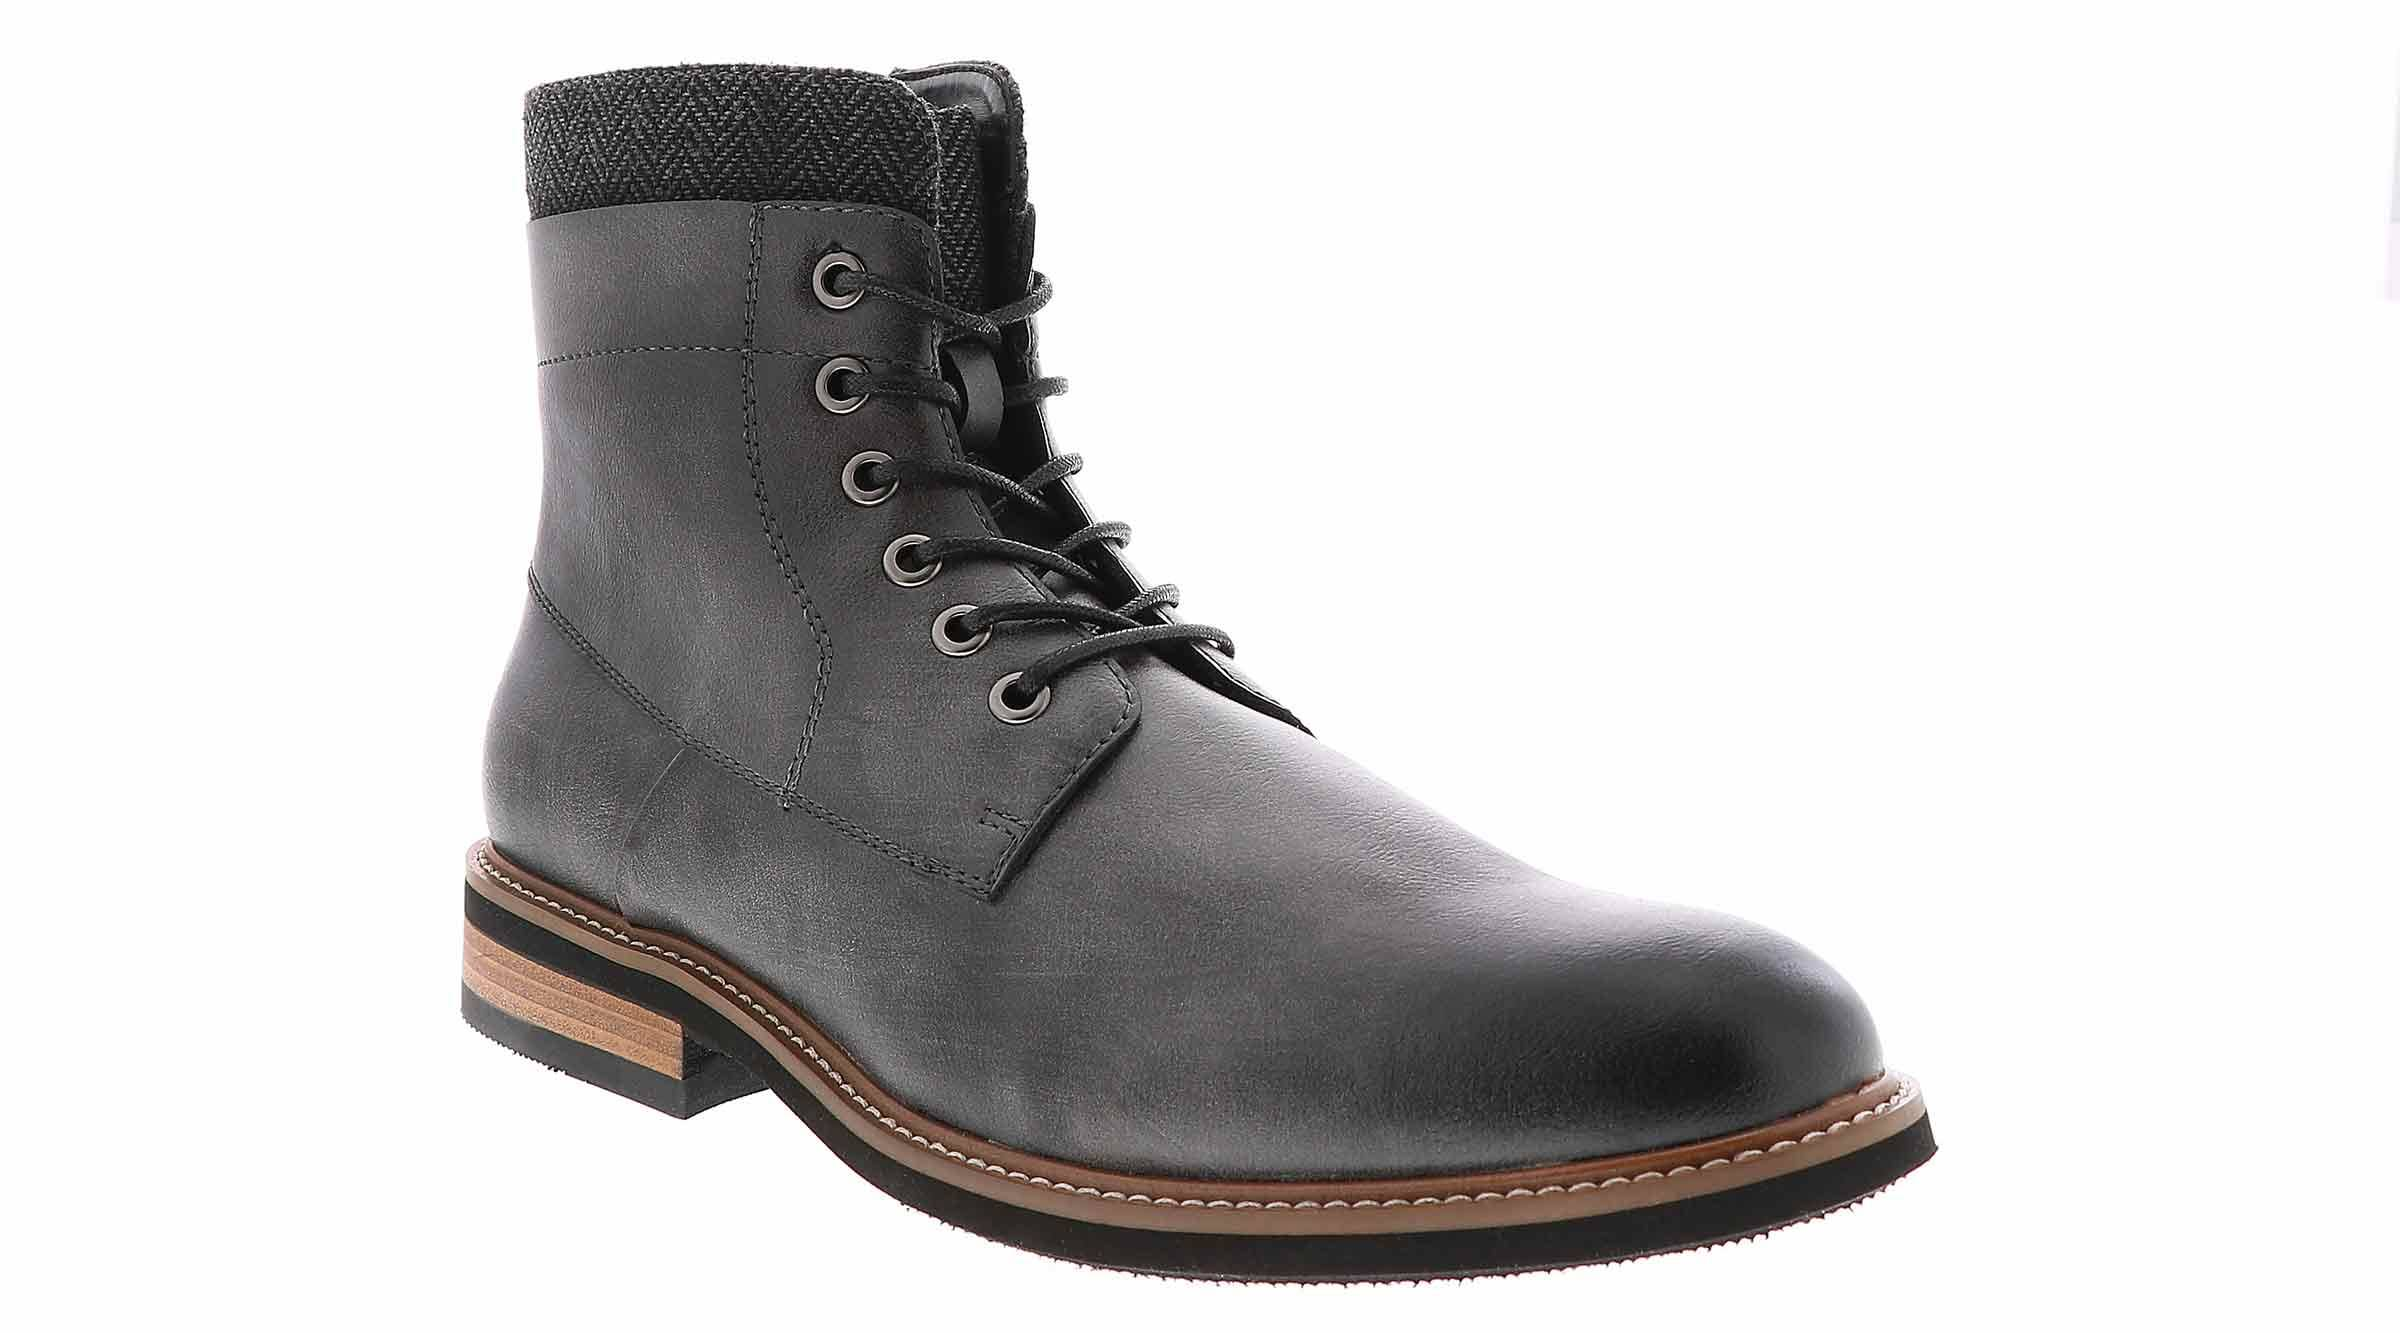 Unlisted Jimmie Boot B Men's Fashion Boot